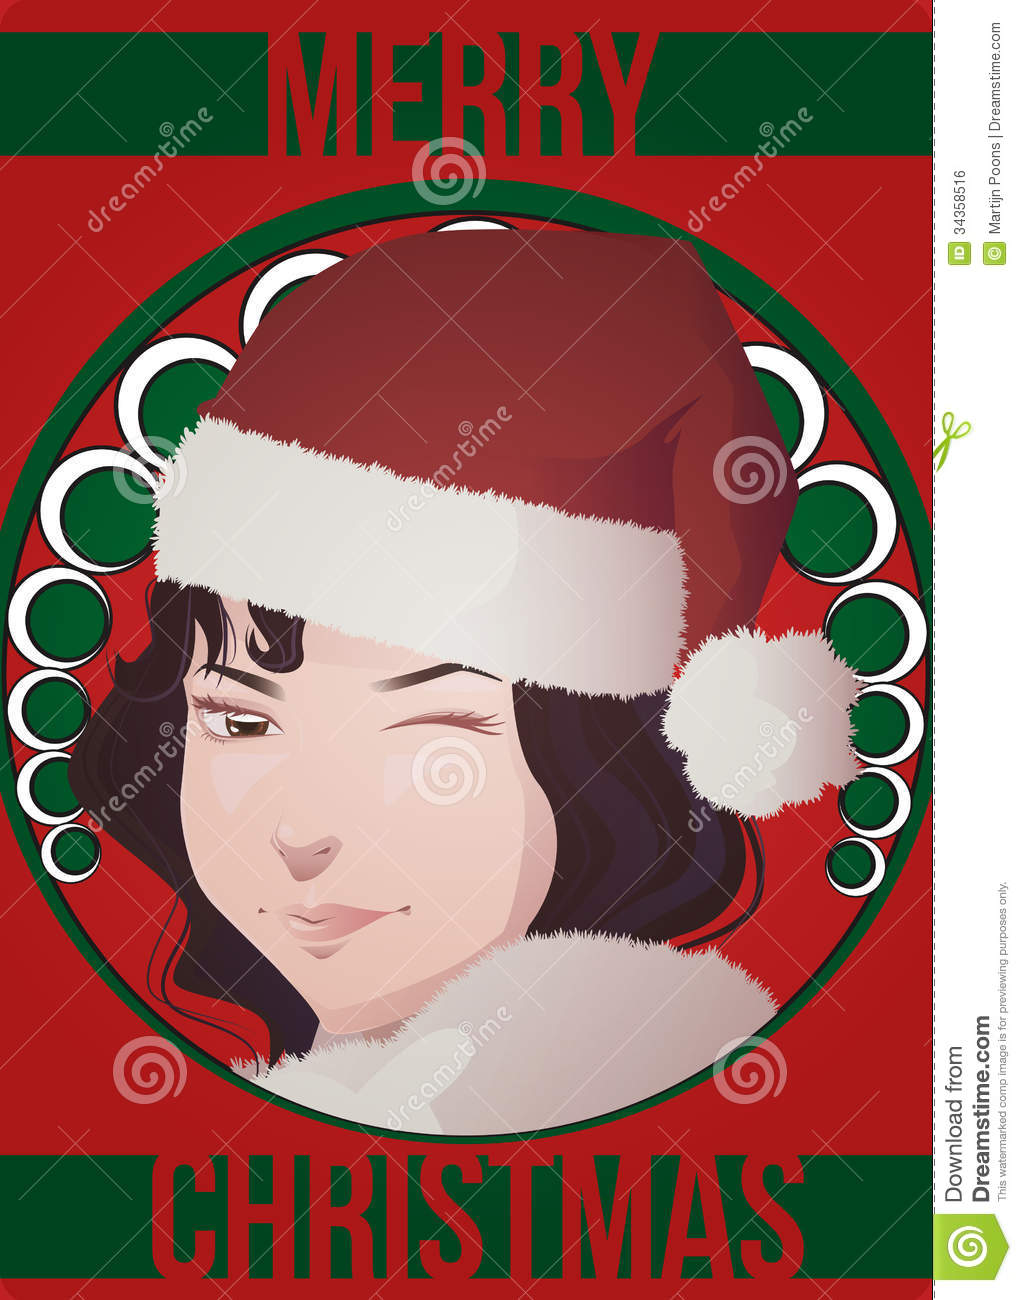 Art deco christmas card stock vector. Illustration of cool - 34358516